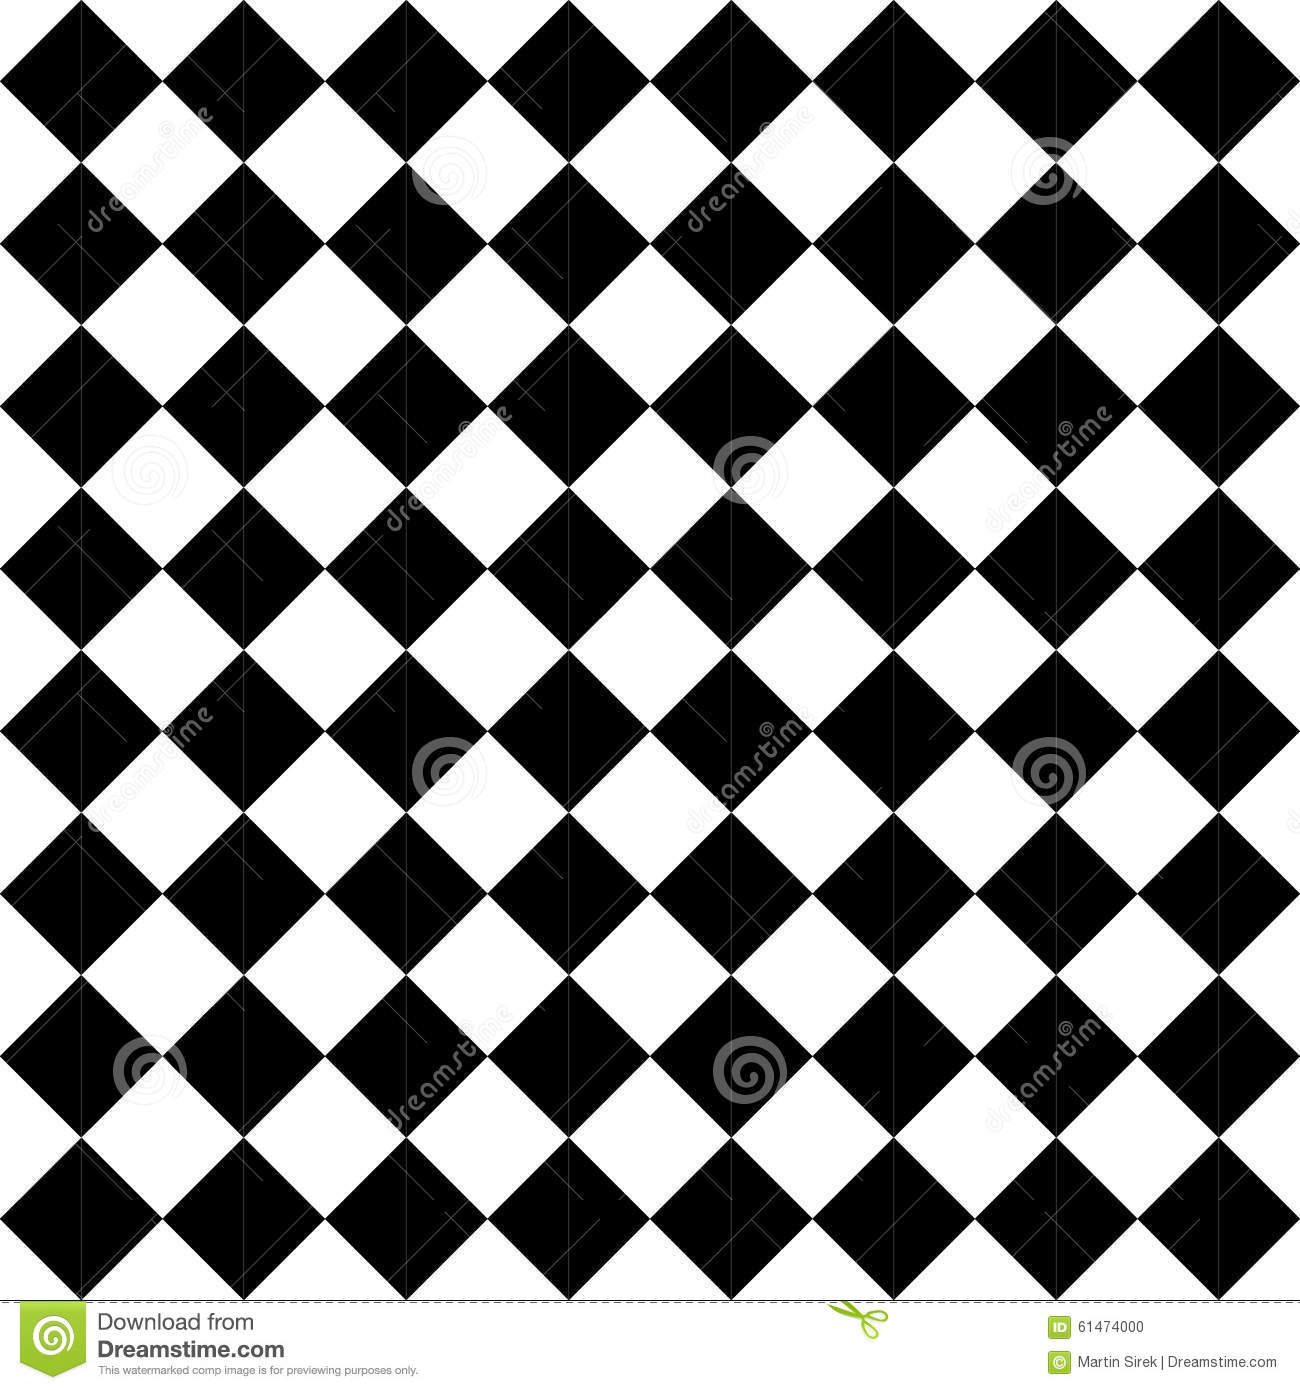 Seamless black and white checkered texture stock images image - Vector Modern Seamless Geometry Pattern Checkered Black And White Abstract Stock Photo